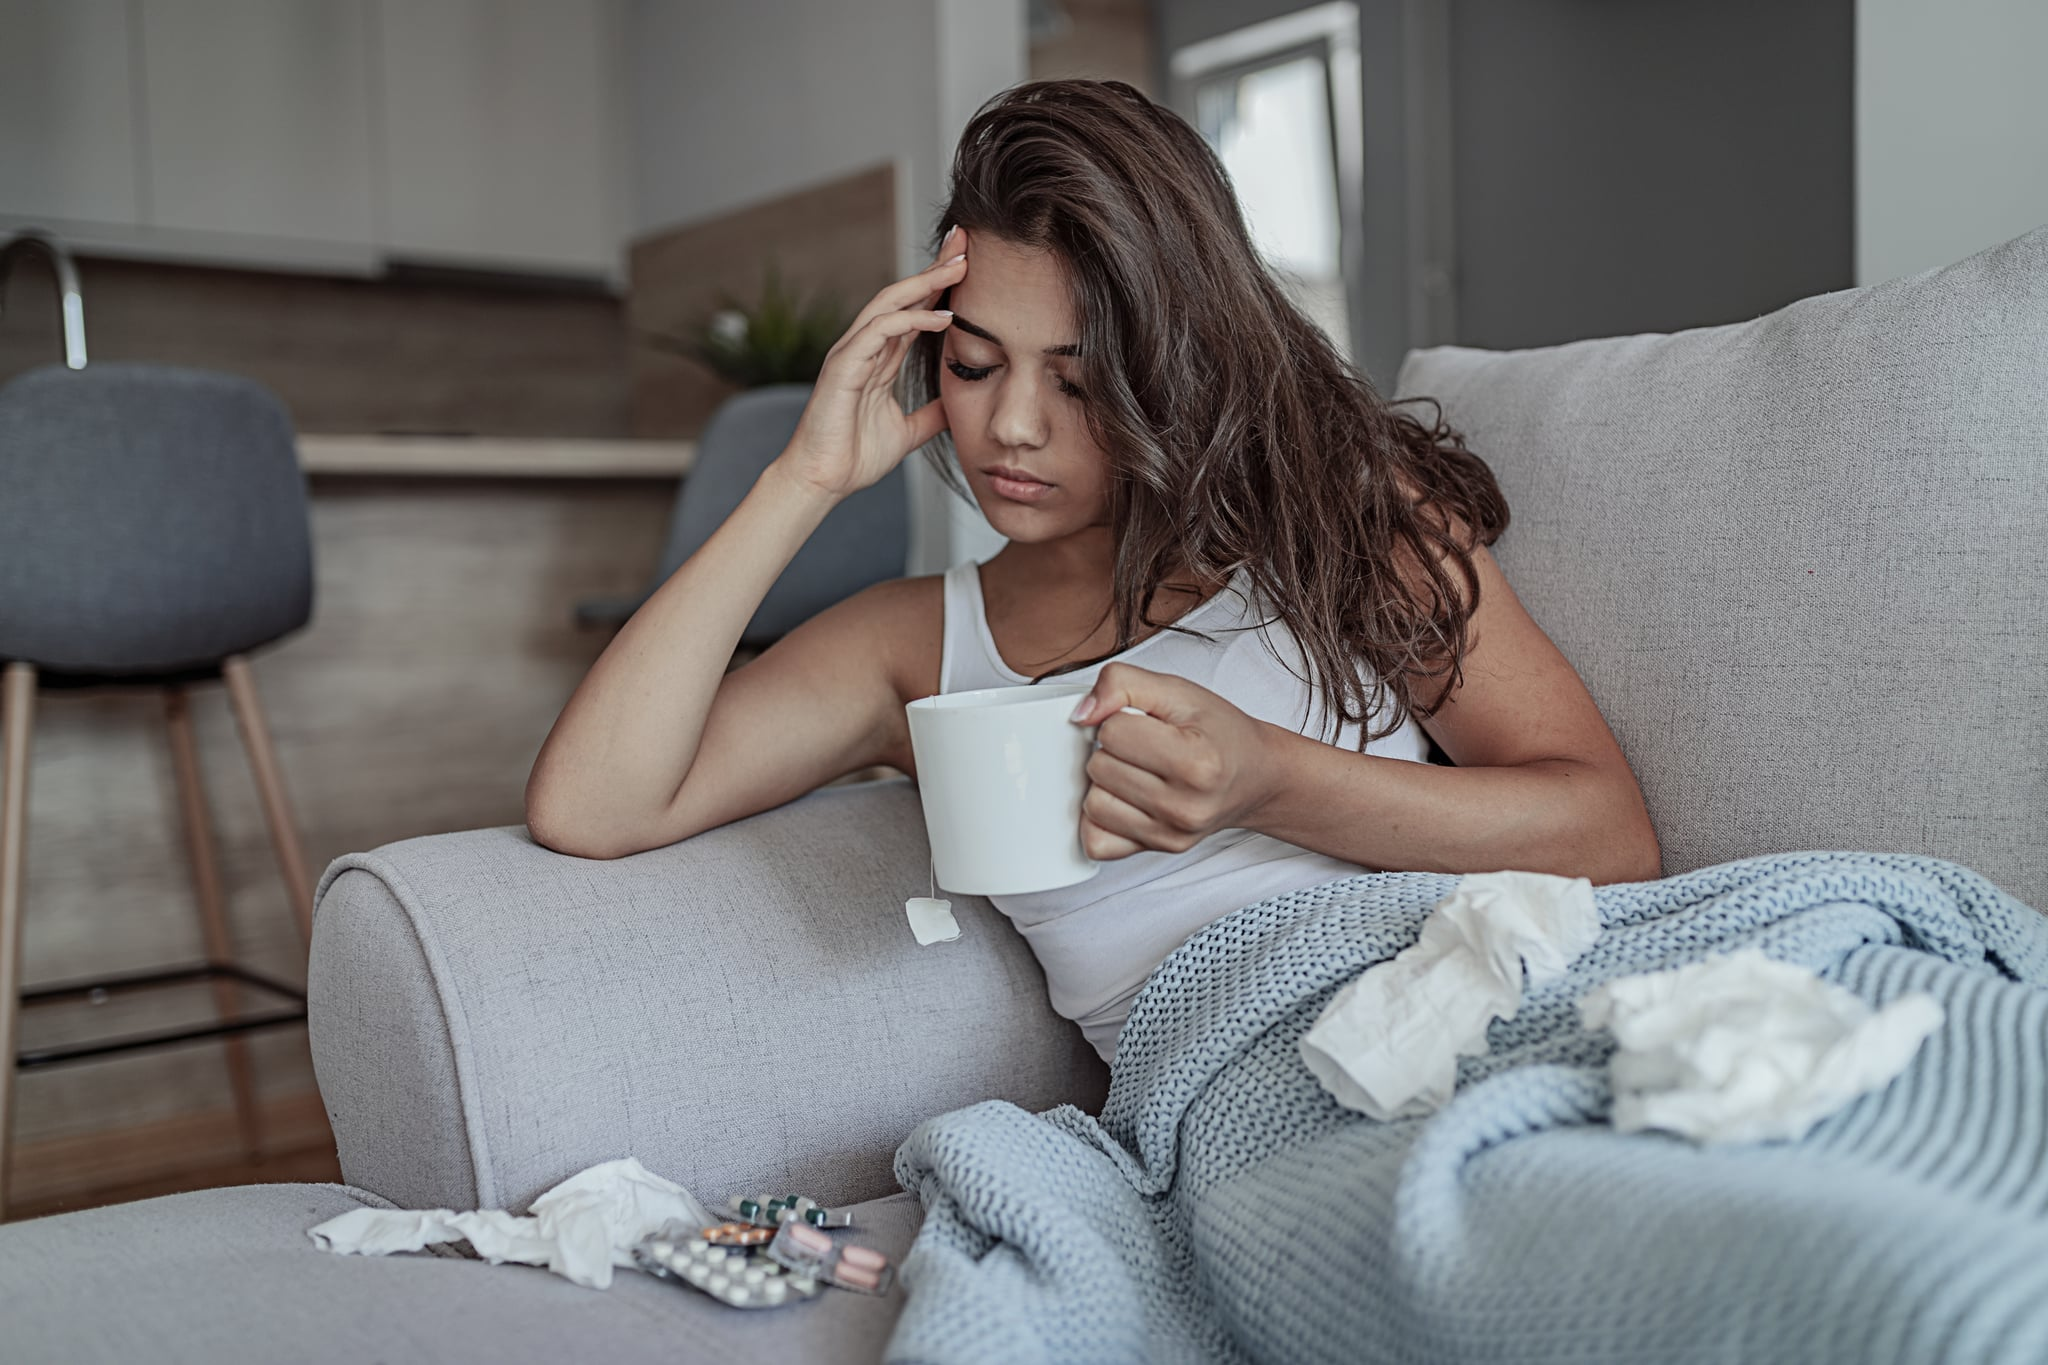 Sick Woman Covered With a Blanket Lying in Bed With High Fever and a Flu, Resting at Living Room. She Is Exhausted and Suffering From Flu While Drinking Tea. Woman With a Strong Morning Headache Sitting on the Bed